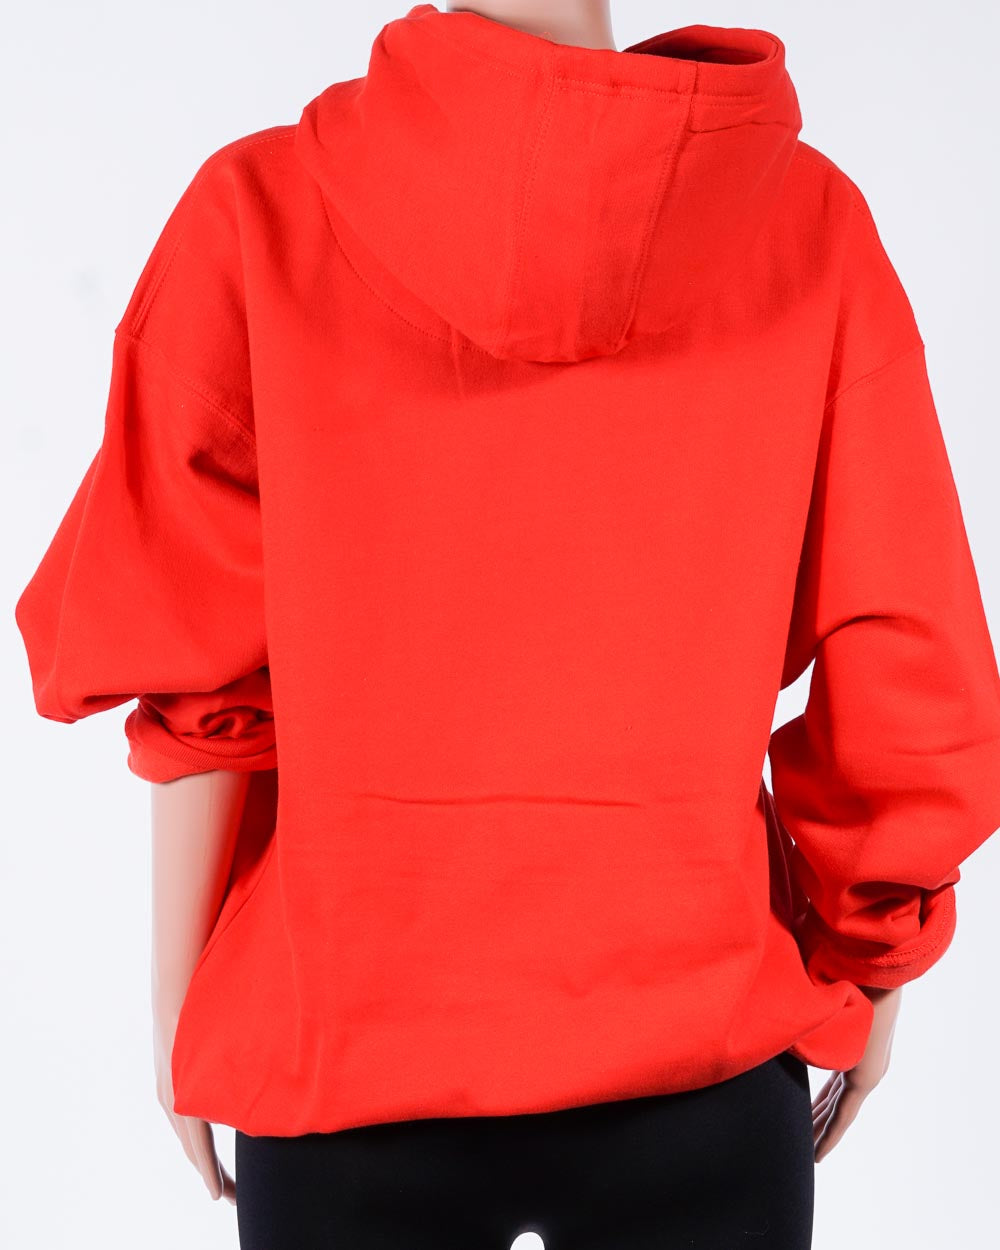 PUSSY hoodie, red/blk